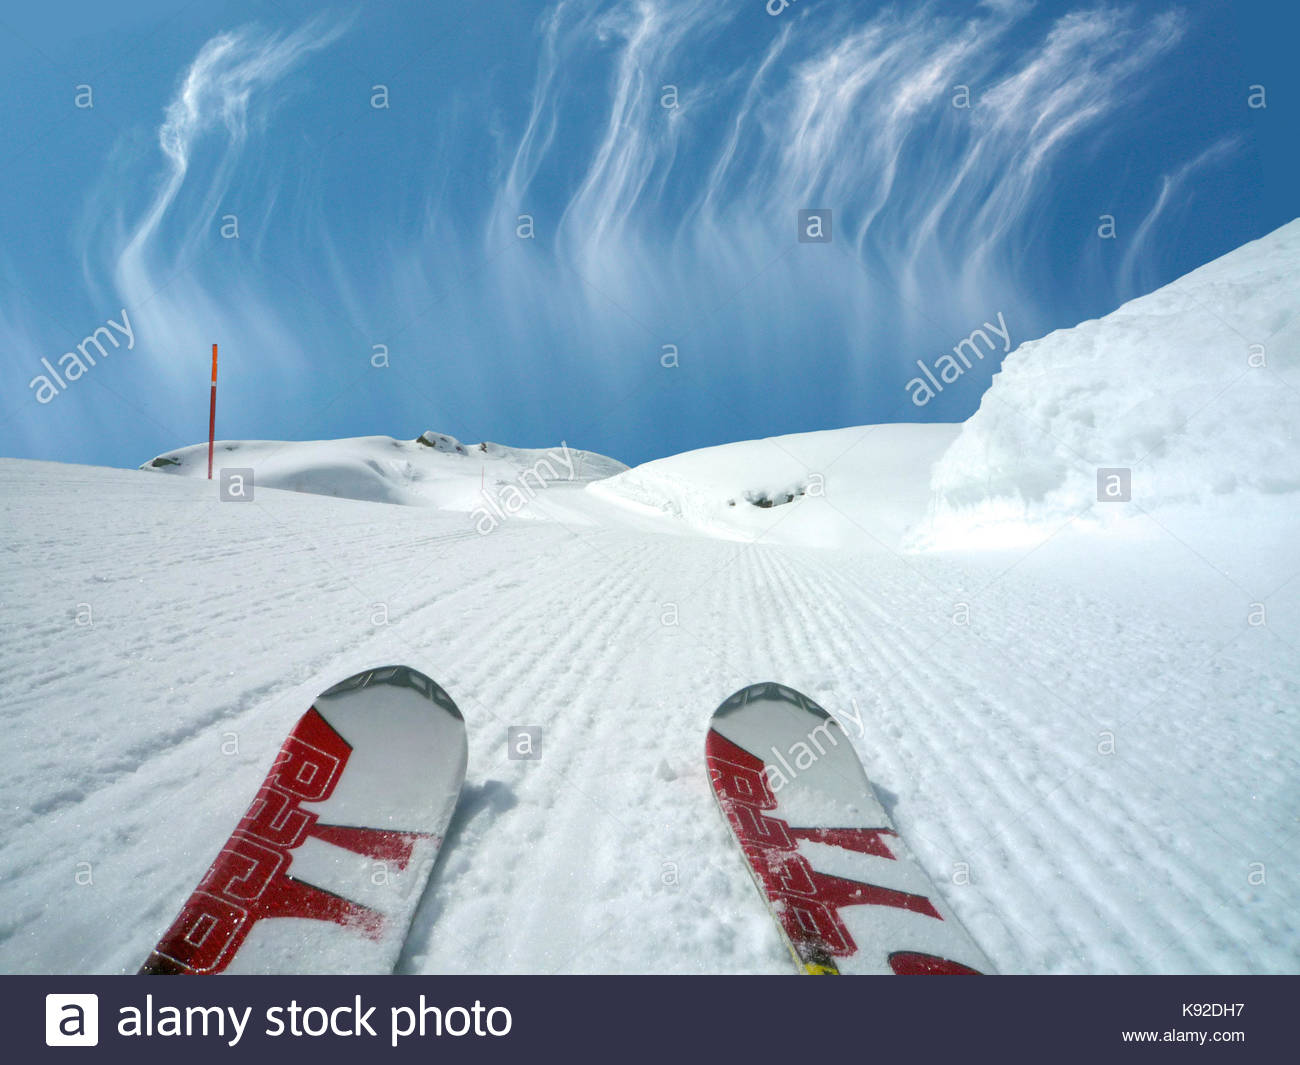 ski tips on a slope at Monte Rosa Ski Valle d'Aosta Italy - Stock Image